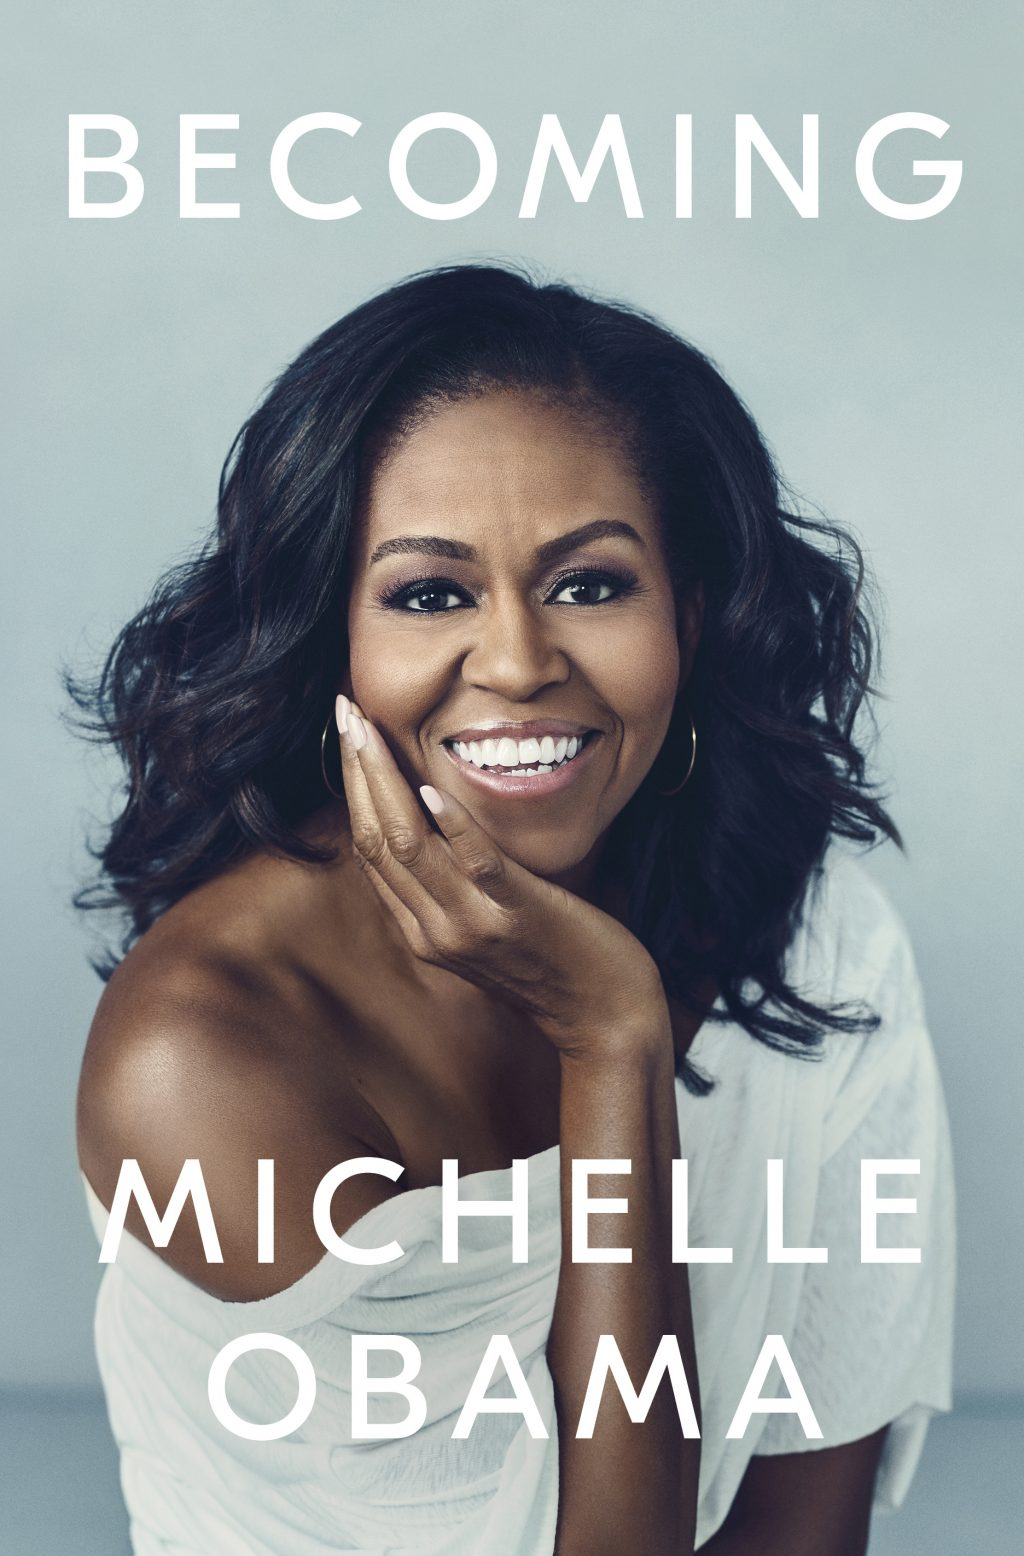 #SavoirFlairReads: 'Becoming' by Michelle Obama